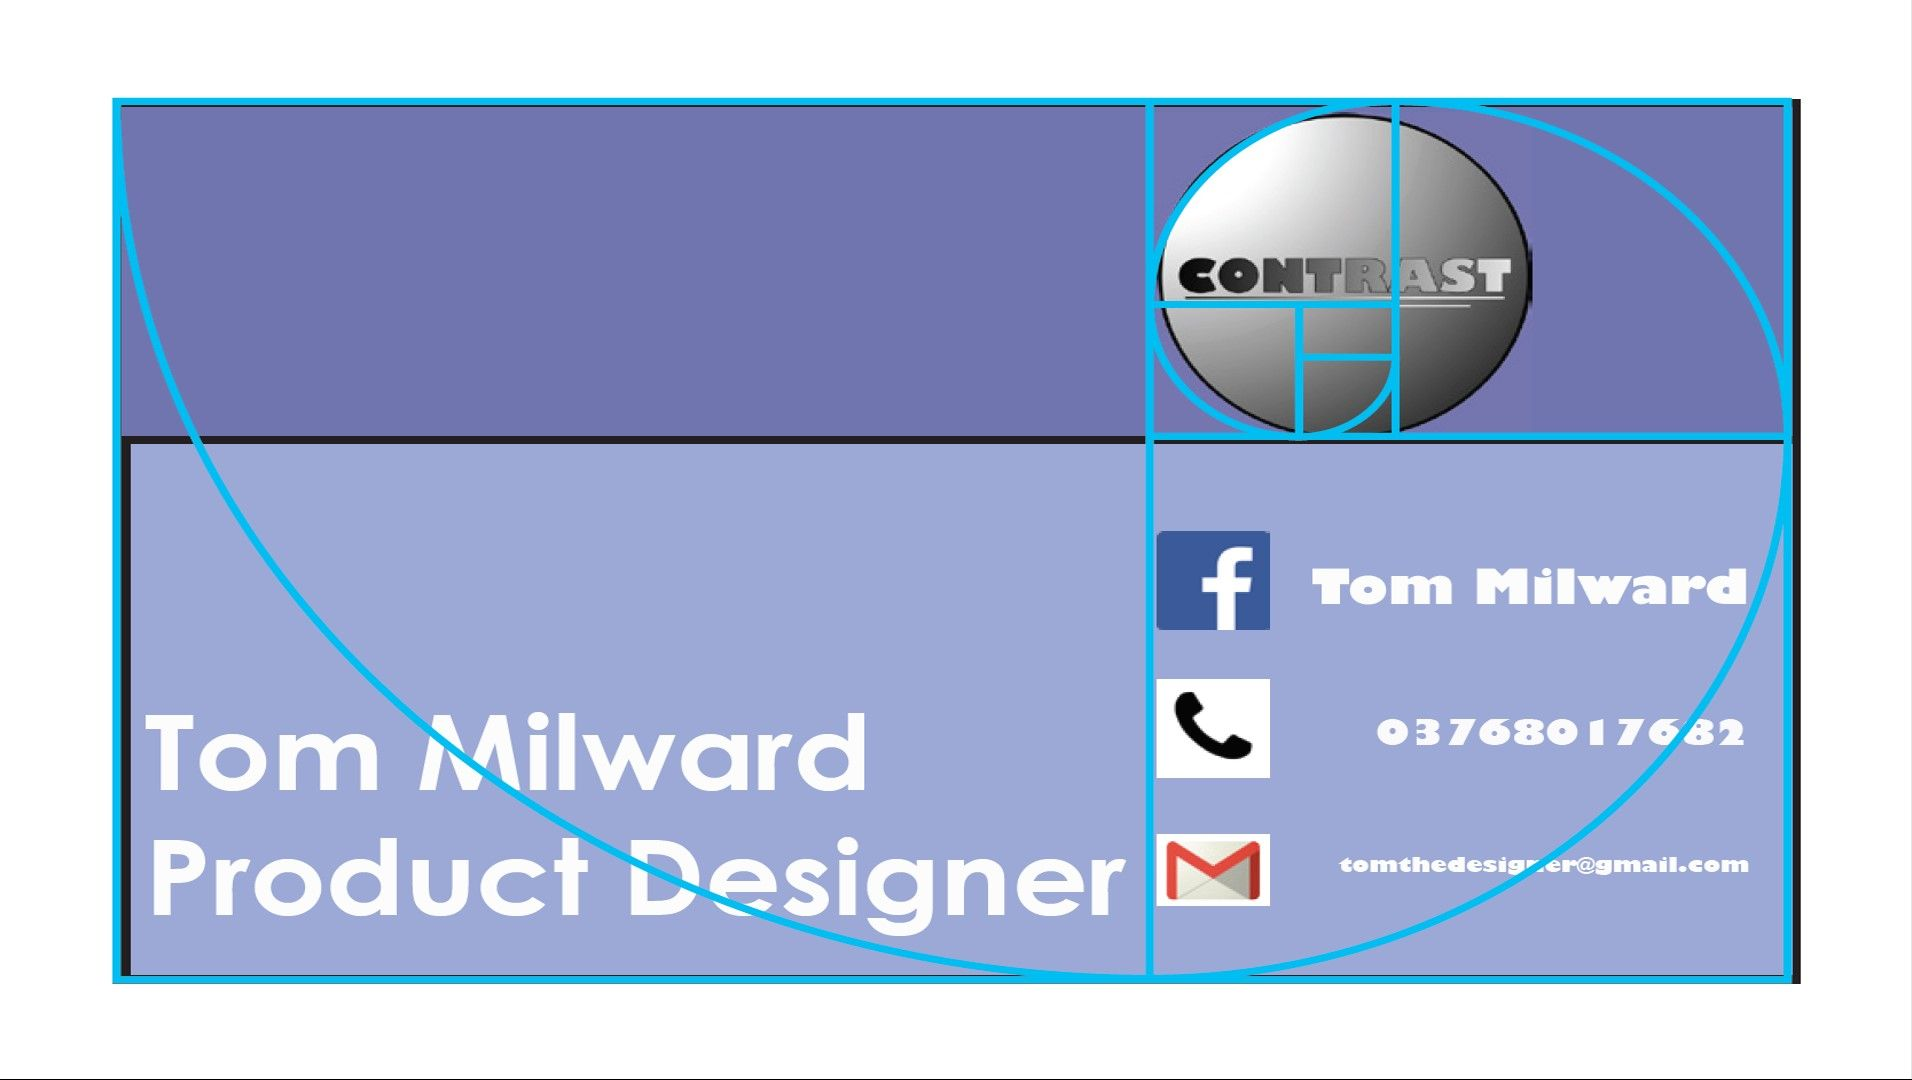 business card using golden ratio with guide pde1350 design